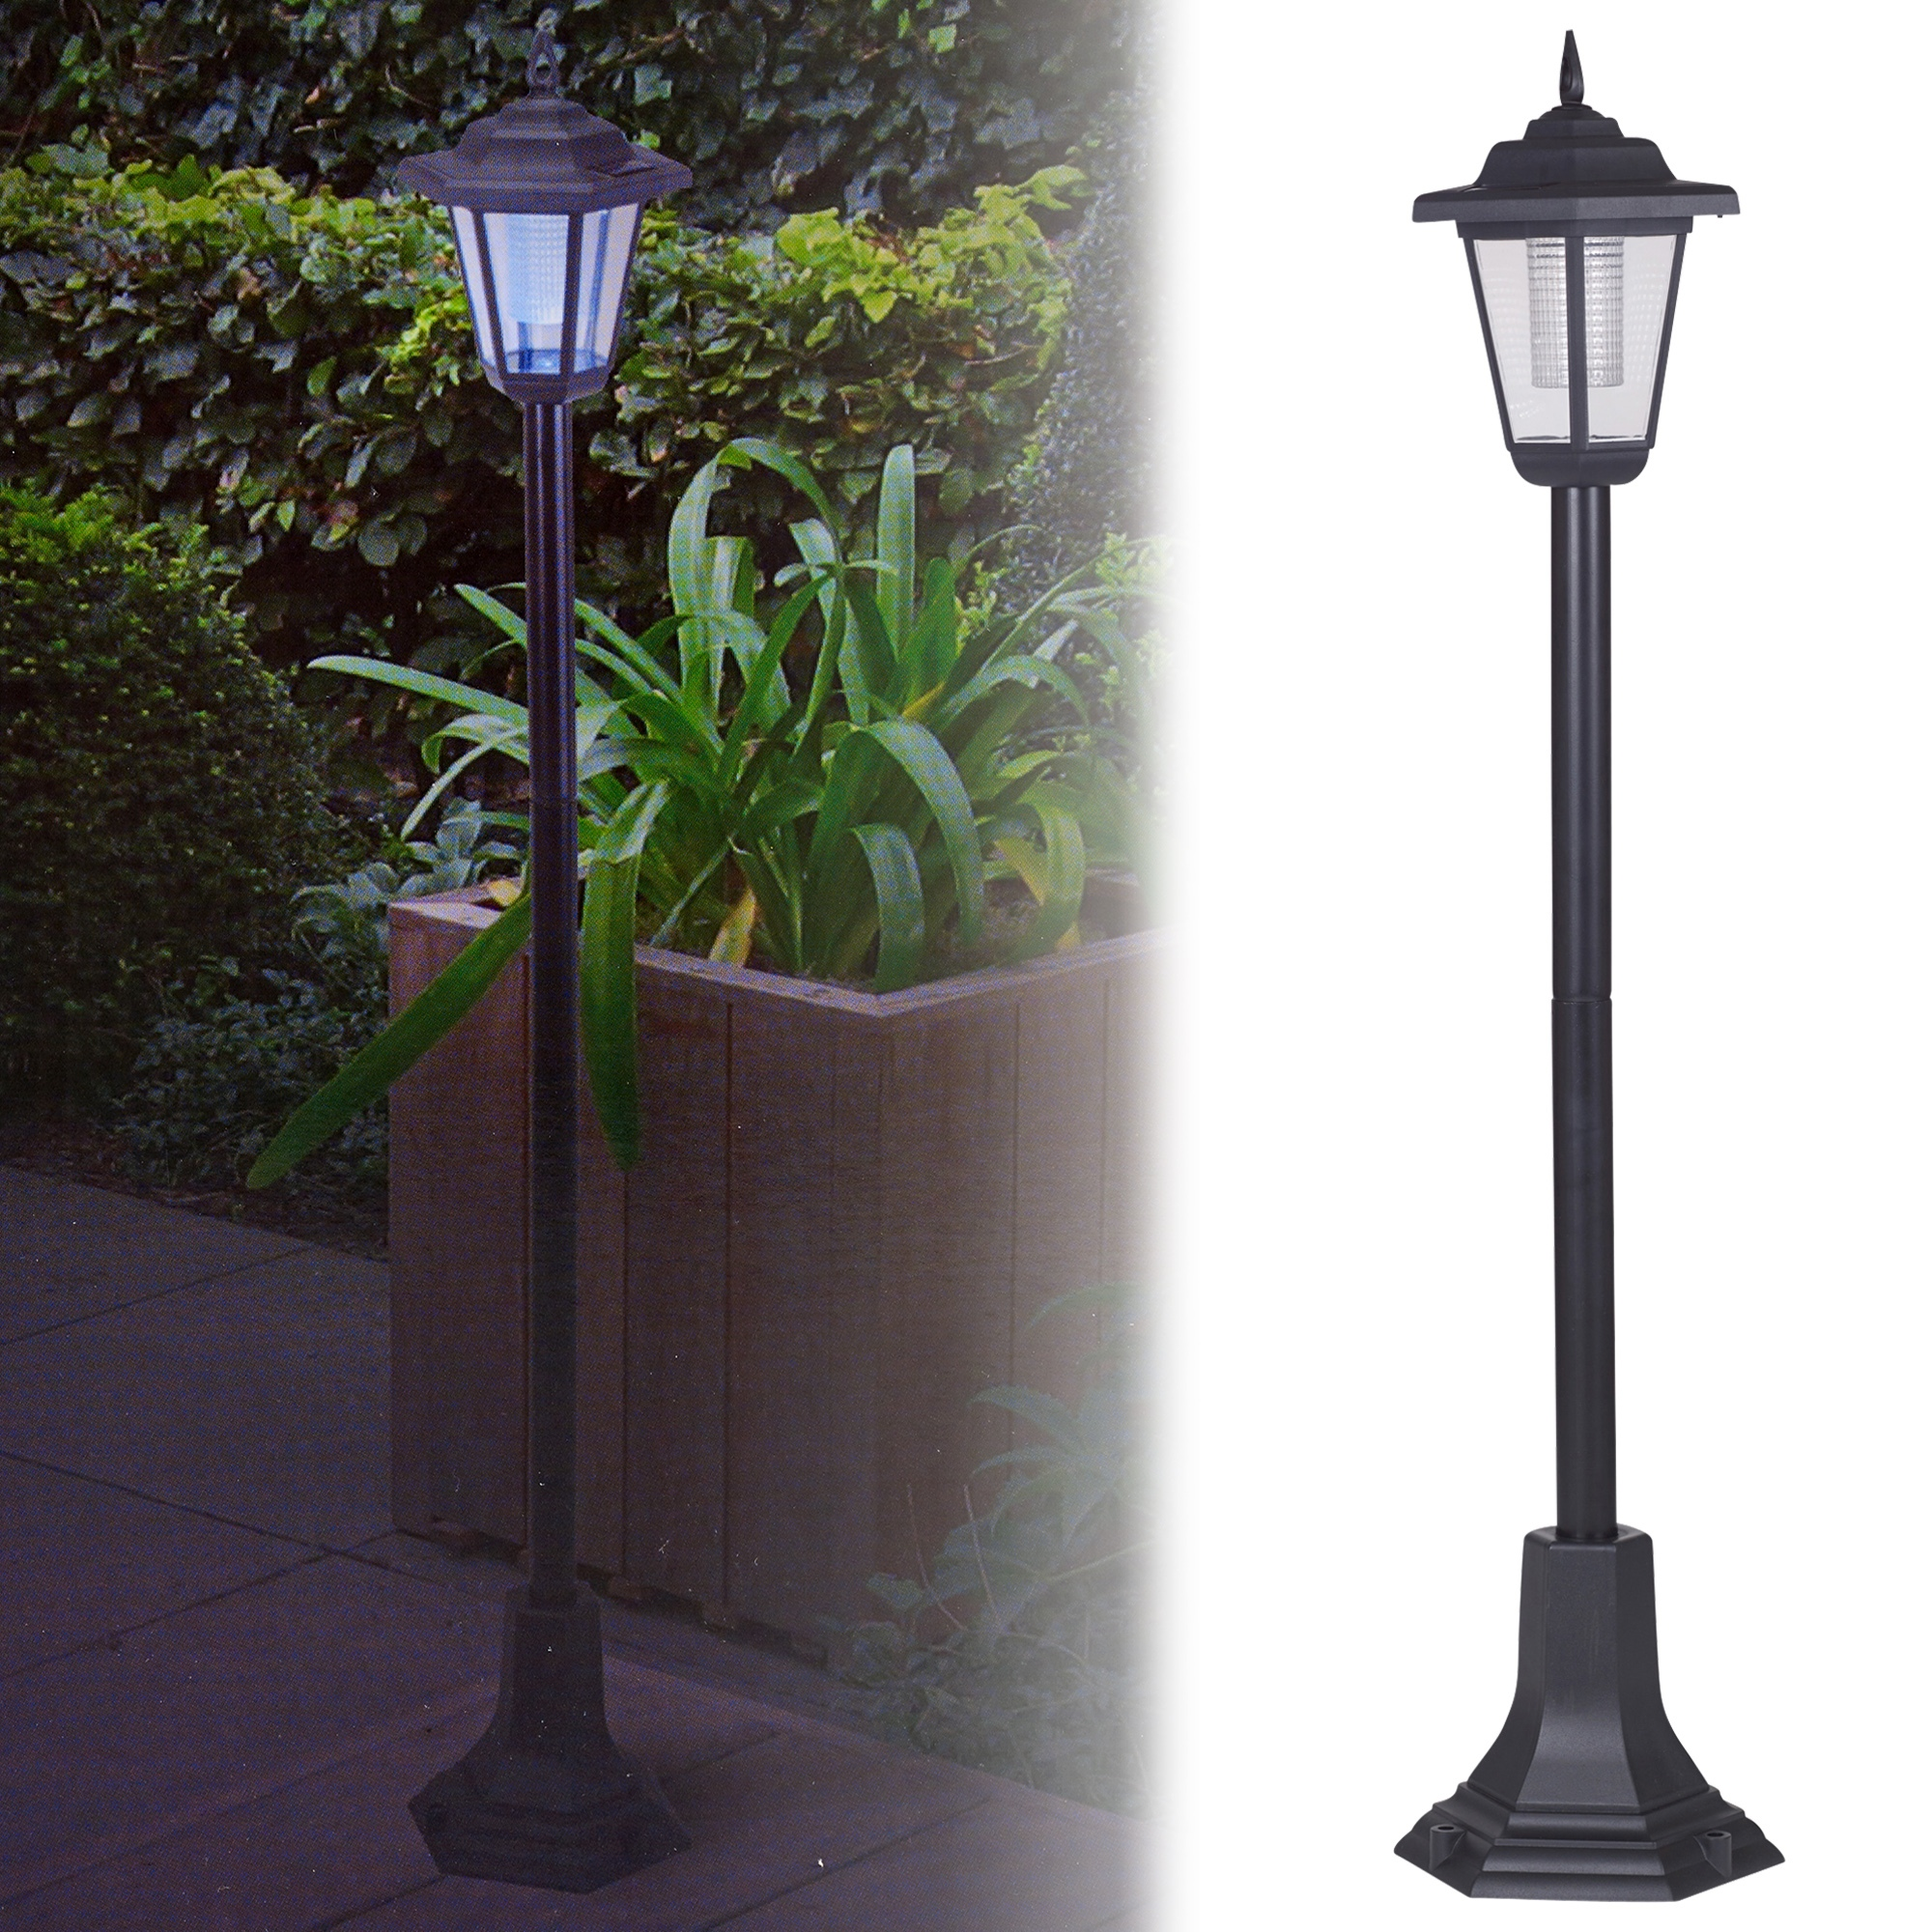 Solar powered garden lights lantern lamp black led pathway driveway item specifics aloadofball Image collections